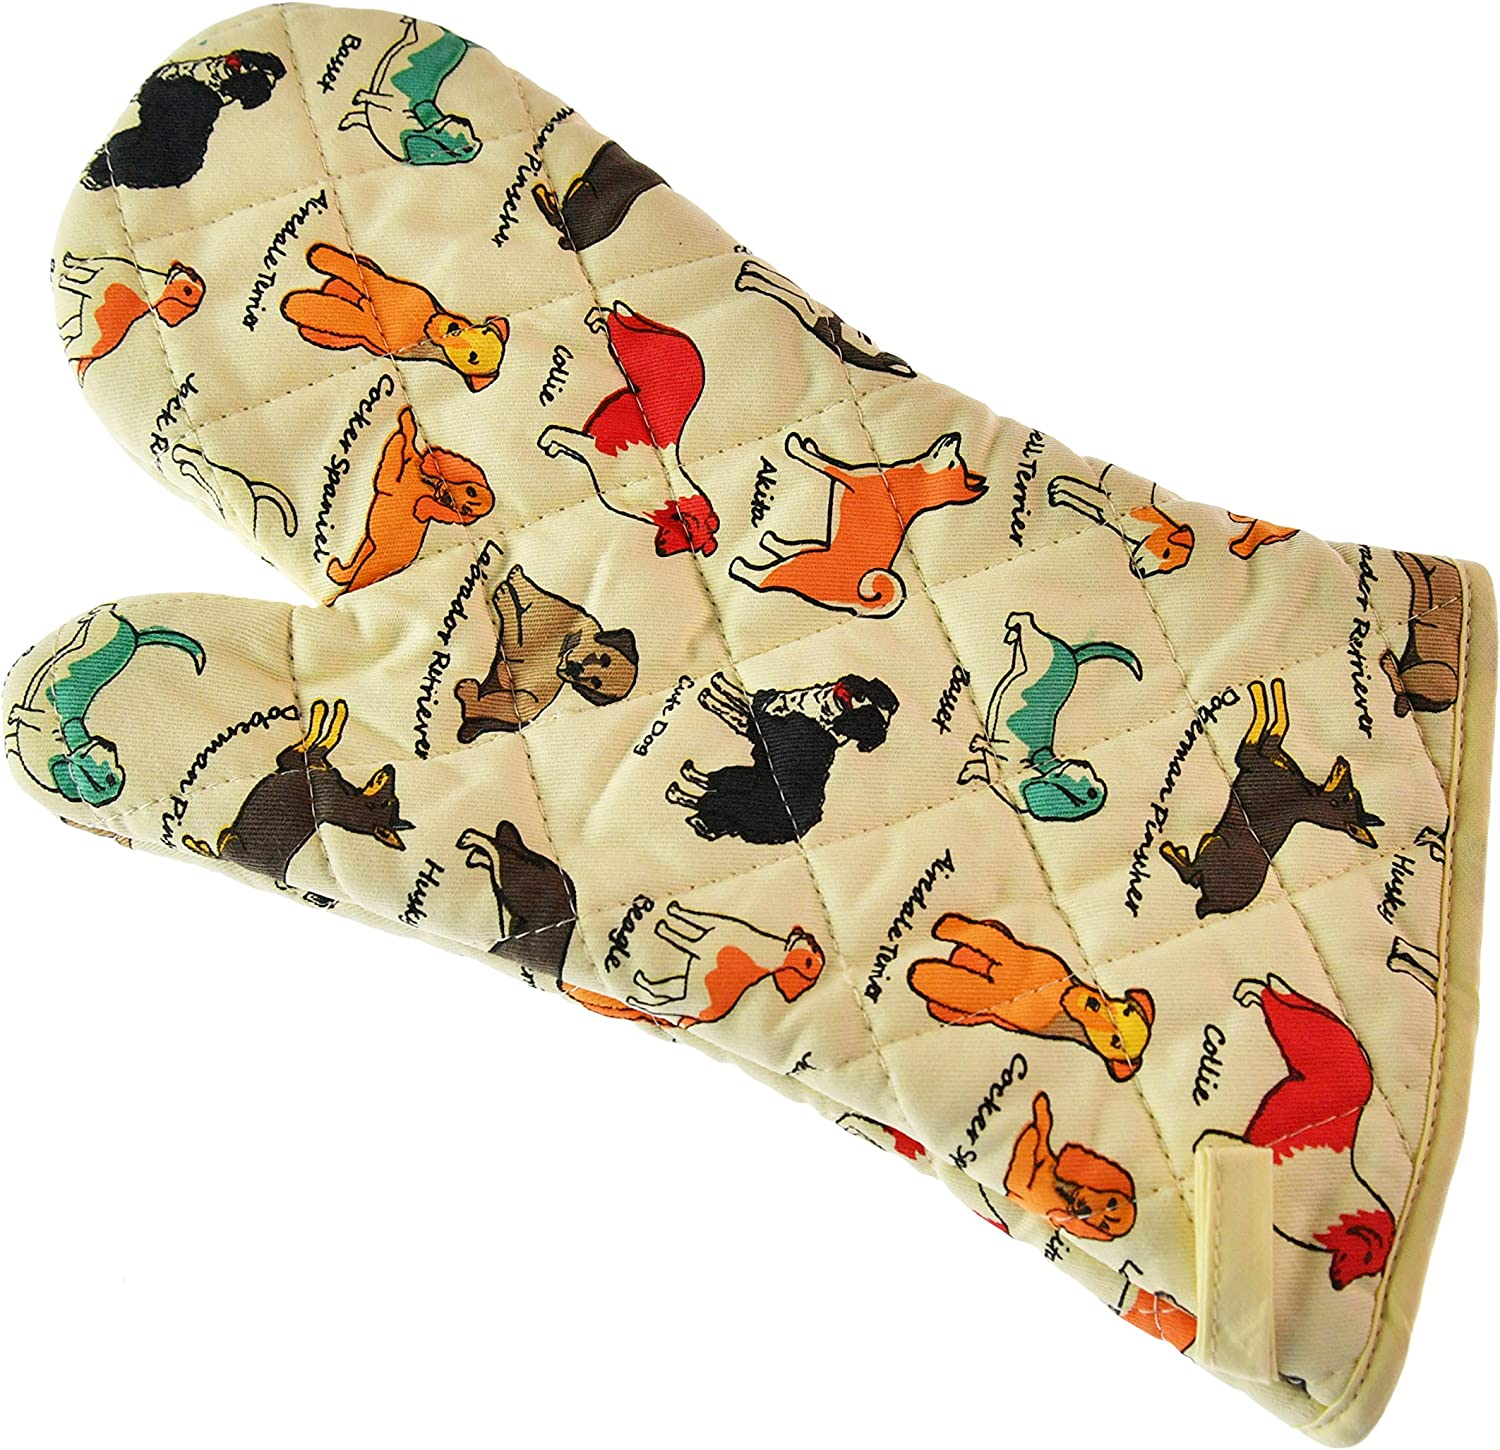 Home-X Cotton Oven Mitt for Cooking and Serving, Dog Breed Print, Bright Pattern